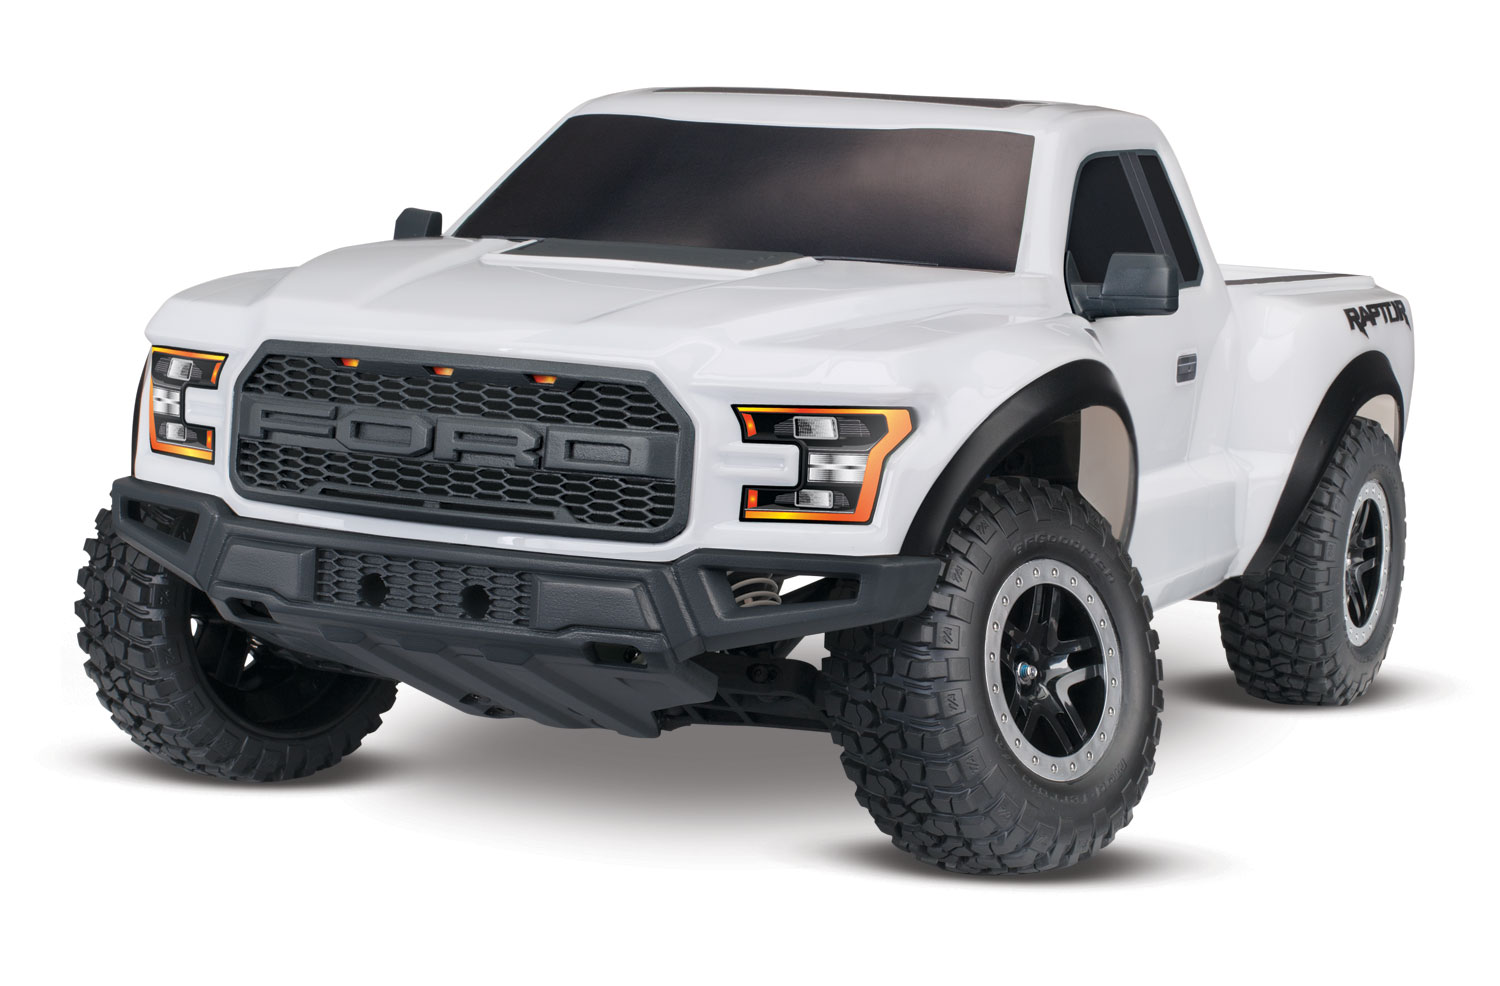 2017 Ford Raptor 1 10 Scale 2wd Rtr Truck White Tra58094 Wht